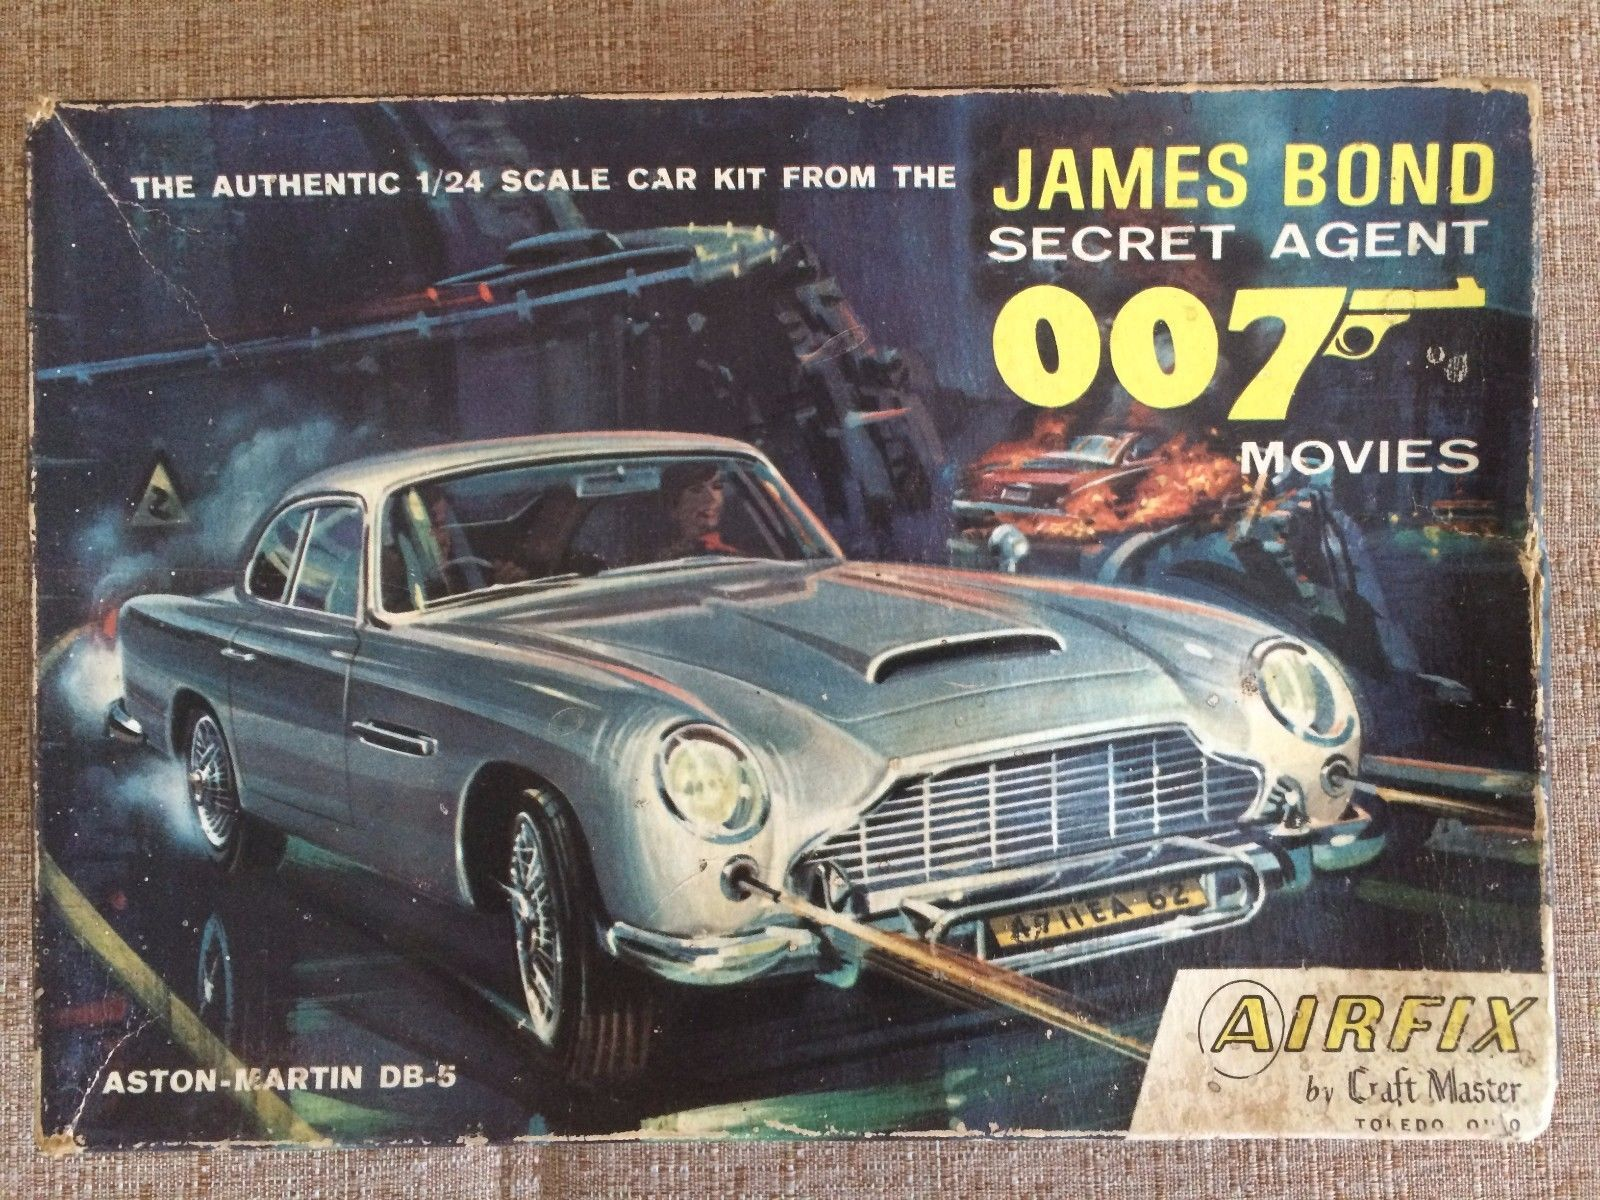 1/24 aston martin db5 james bond 007 (airfix) | aston martin db5